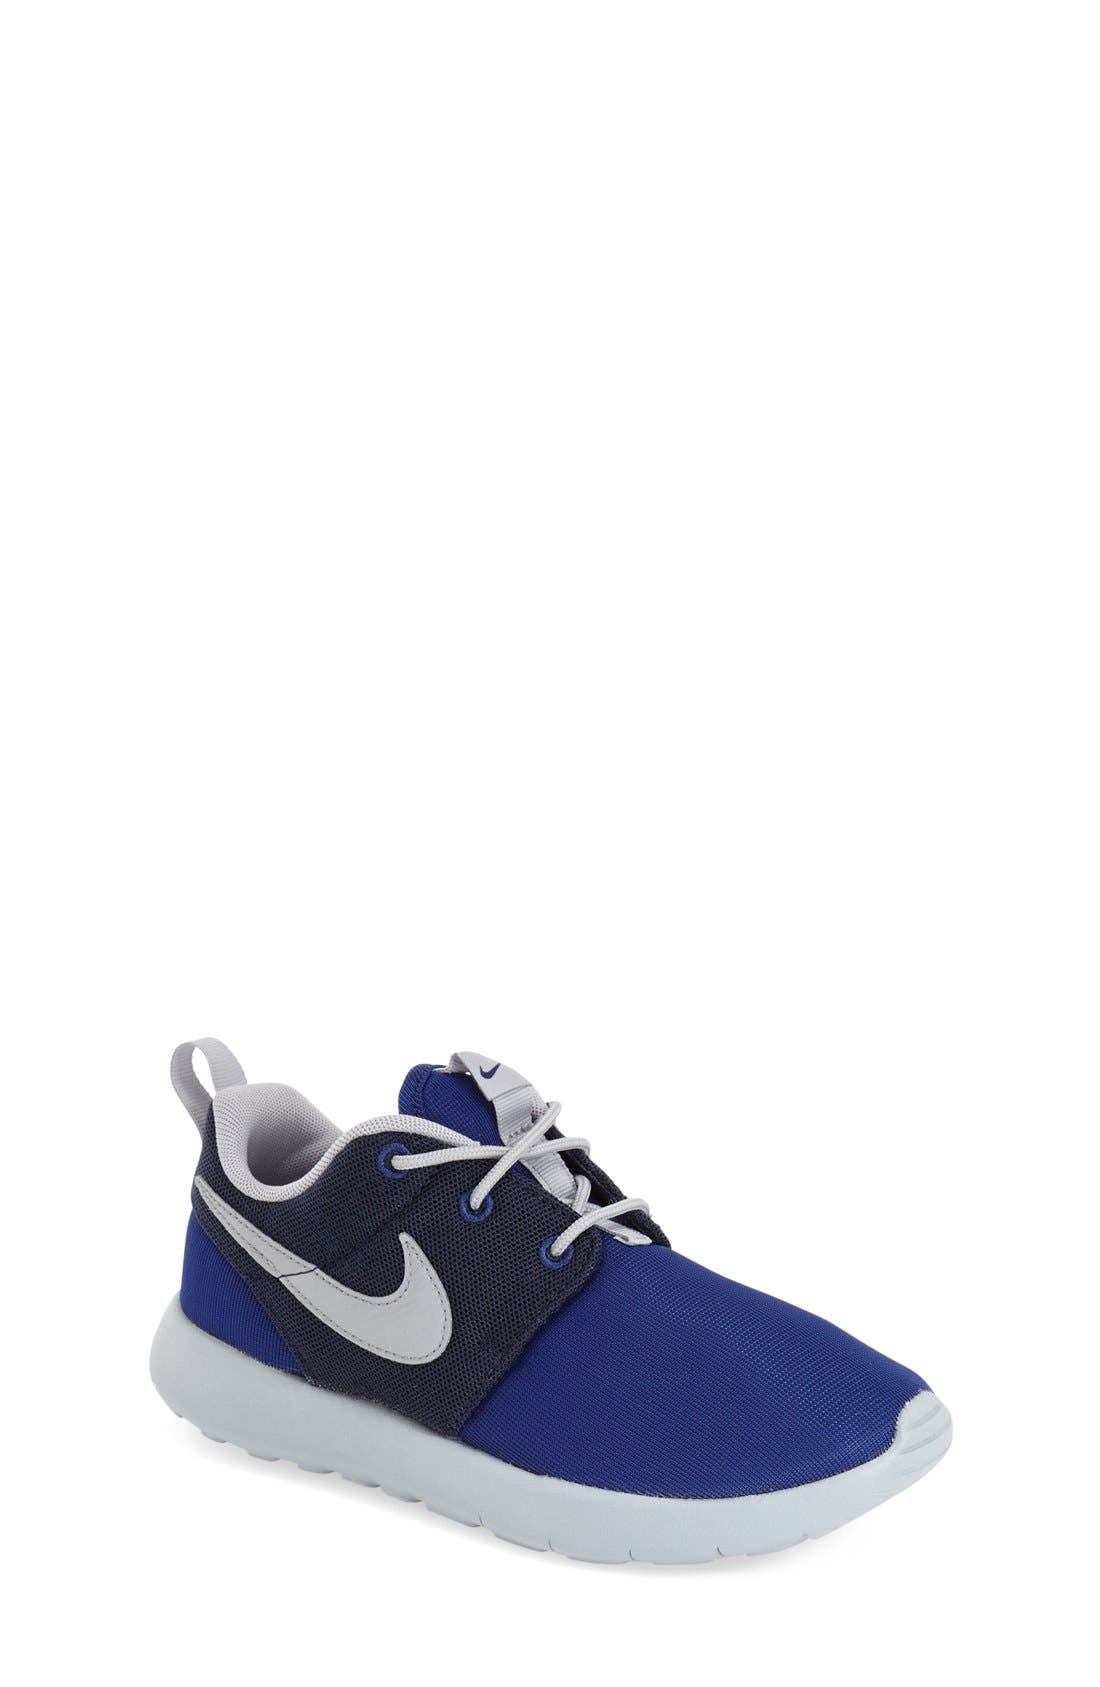 Roshe Run Sneaker,                             Main thumbnail 14, color,